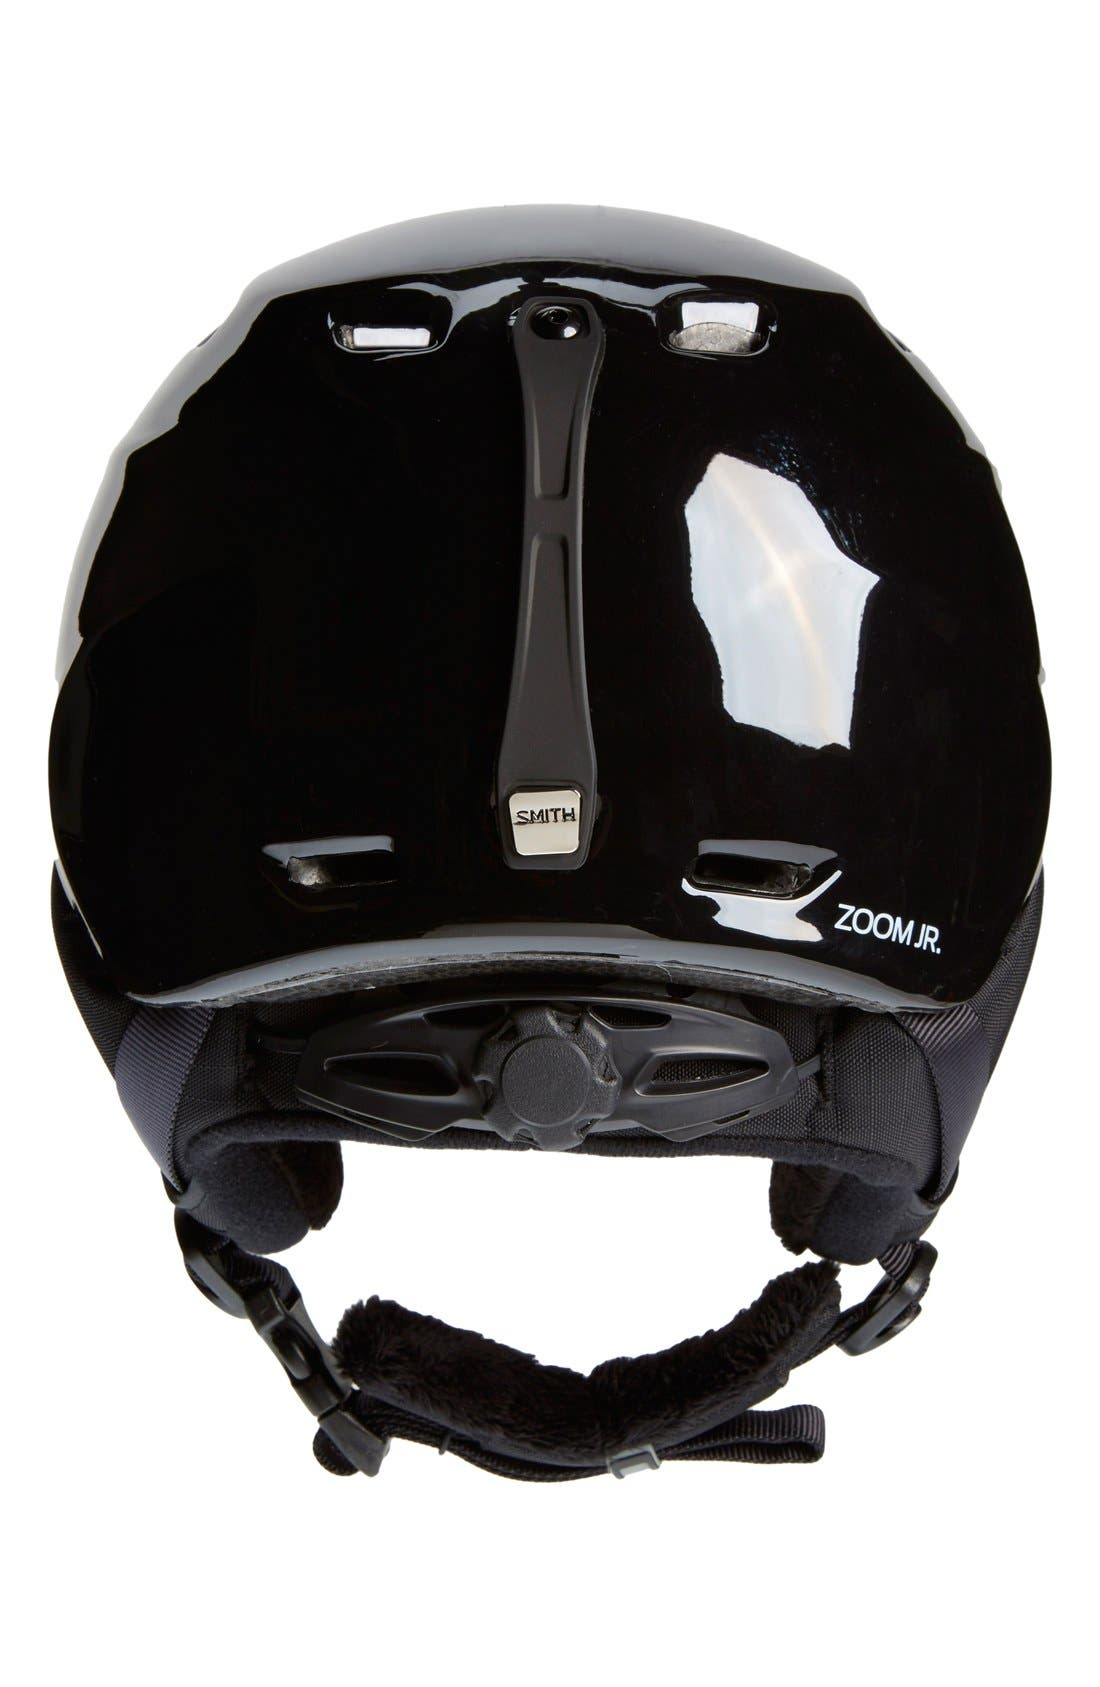 'Zoom Jr.' Snow Helmet,                             Alternate thumbnail 2, color,                             Black